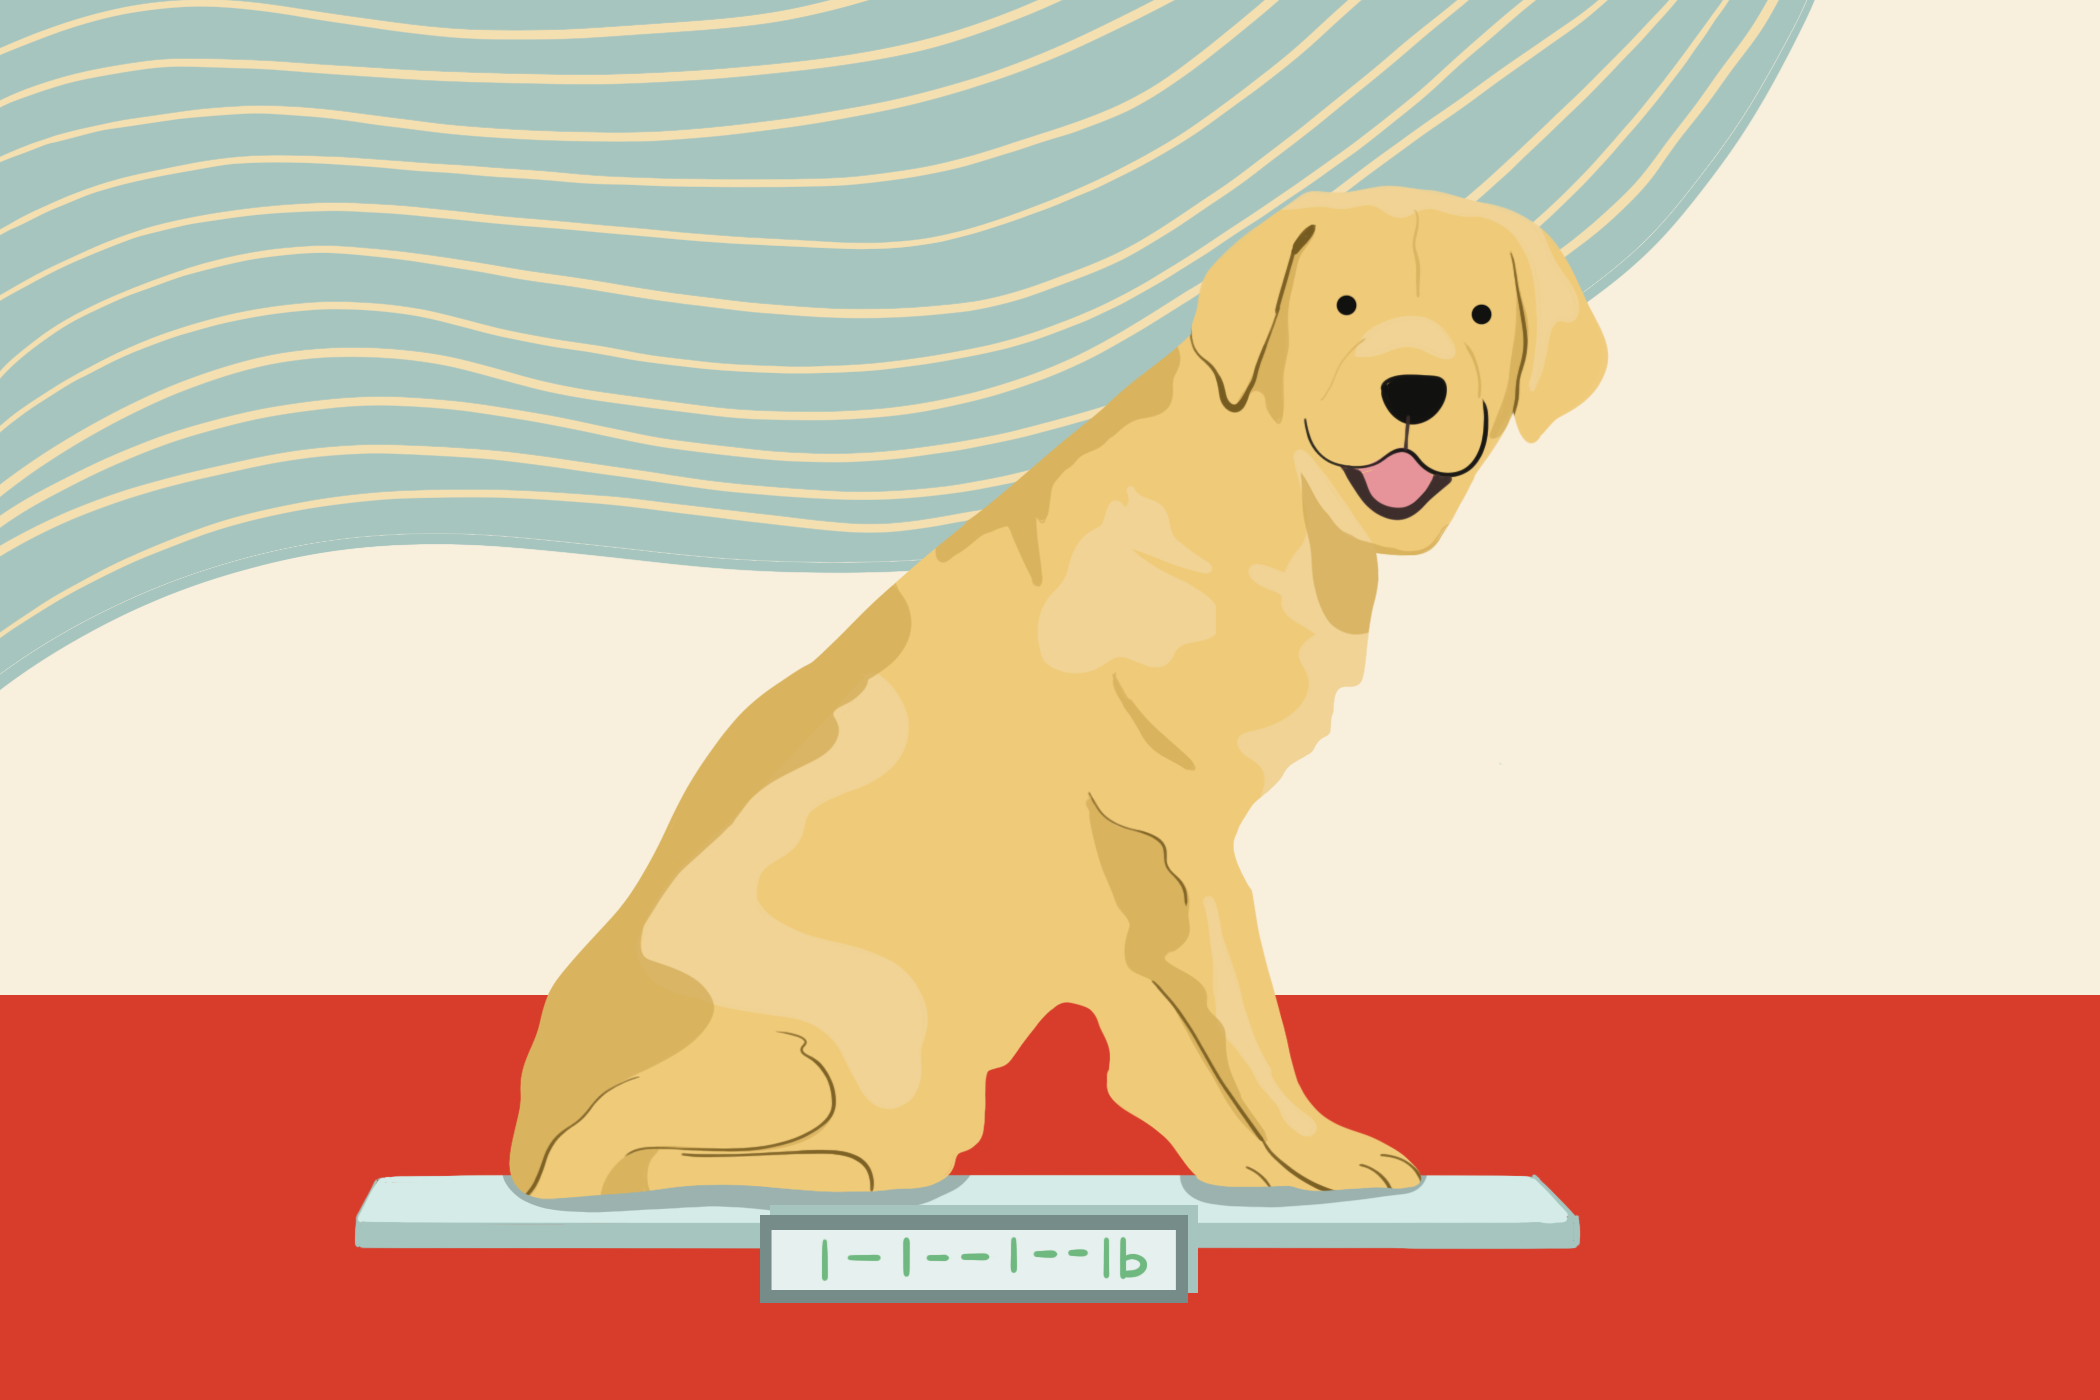 illustration of a dog sitting on a scale